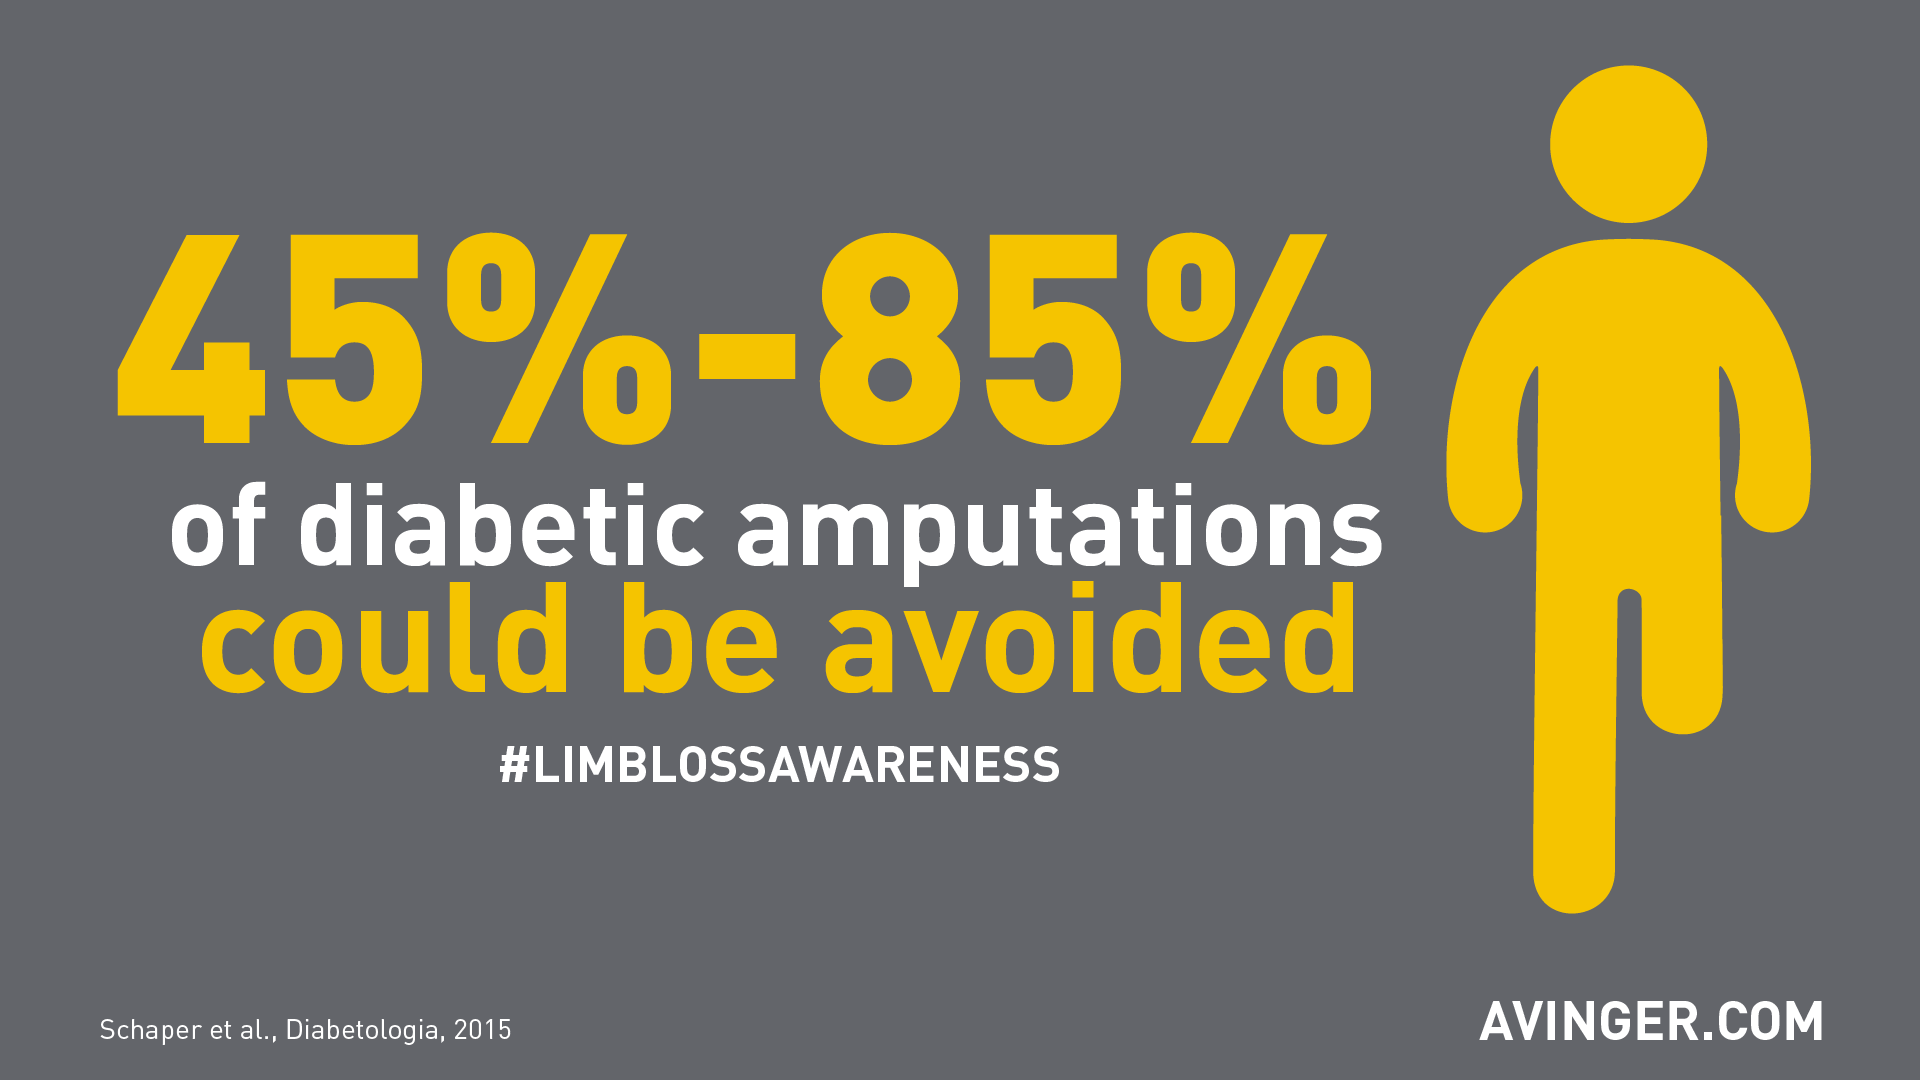 45% to 85% of diabetic amputations could be avoided